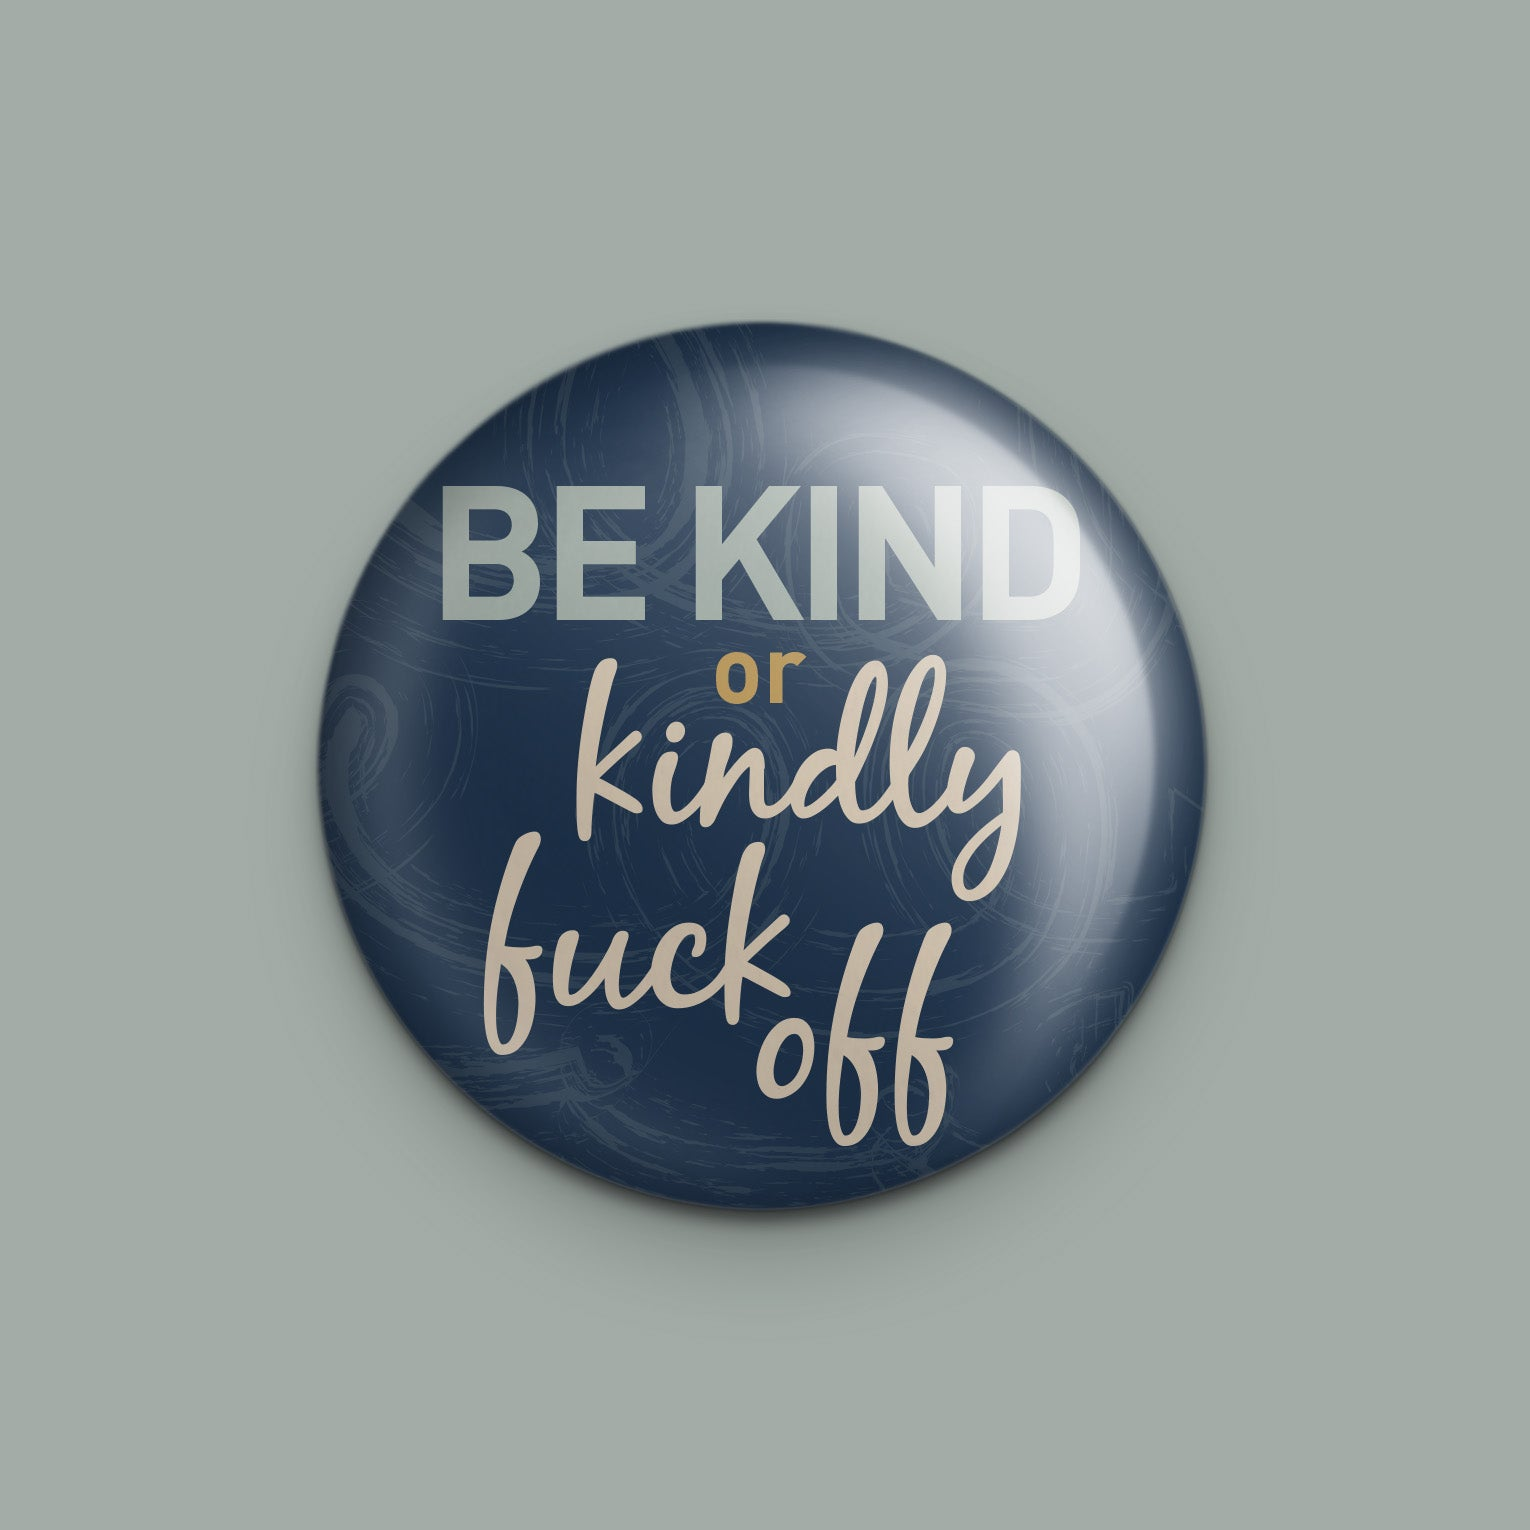 Be Kind of Kindly Fuck Off Pin